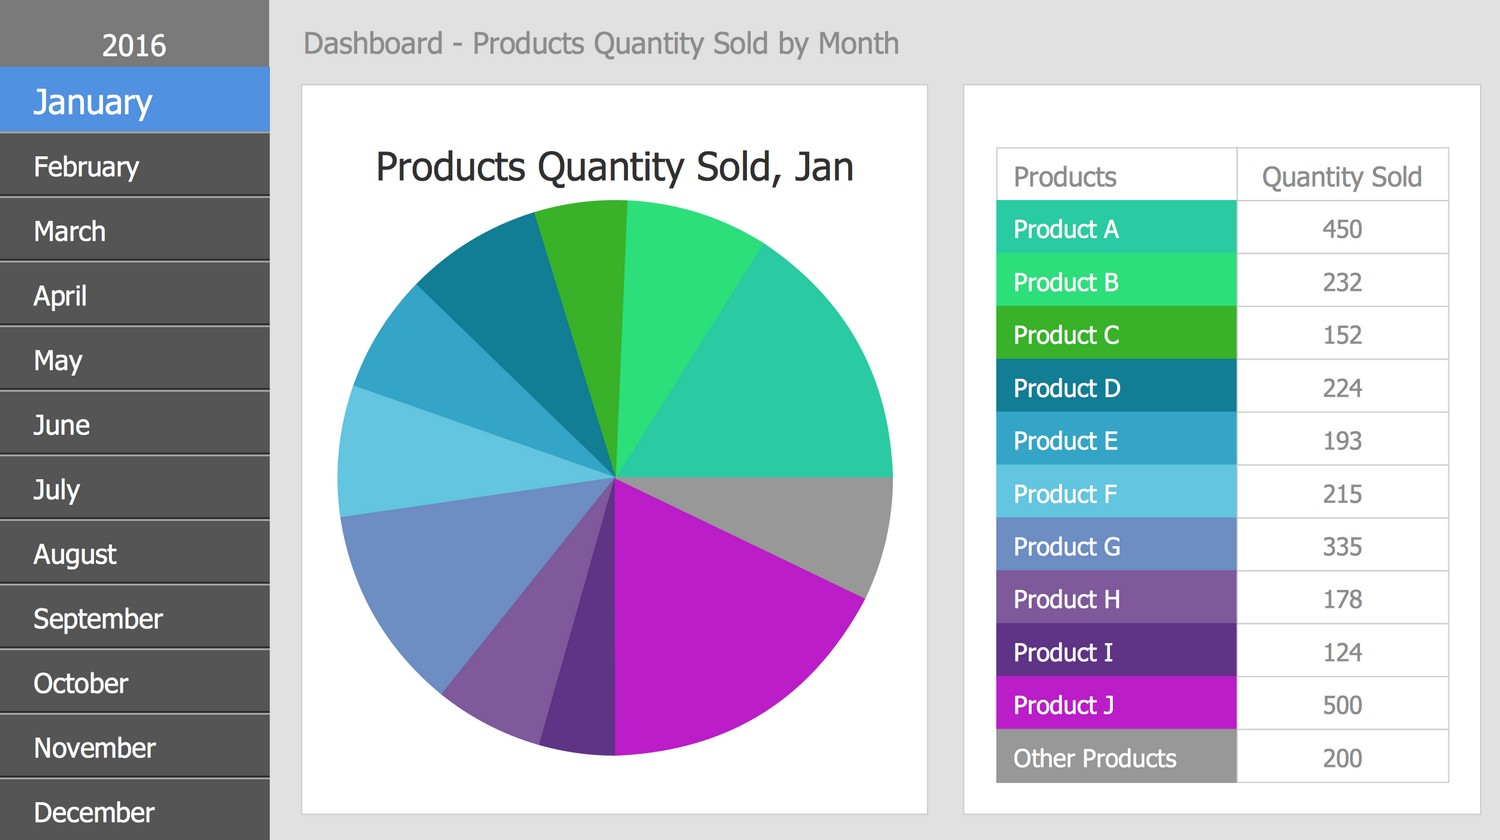 Business Intelligence Dashboard - Products Quantity Sold by Month, 2016